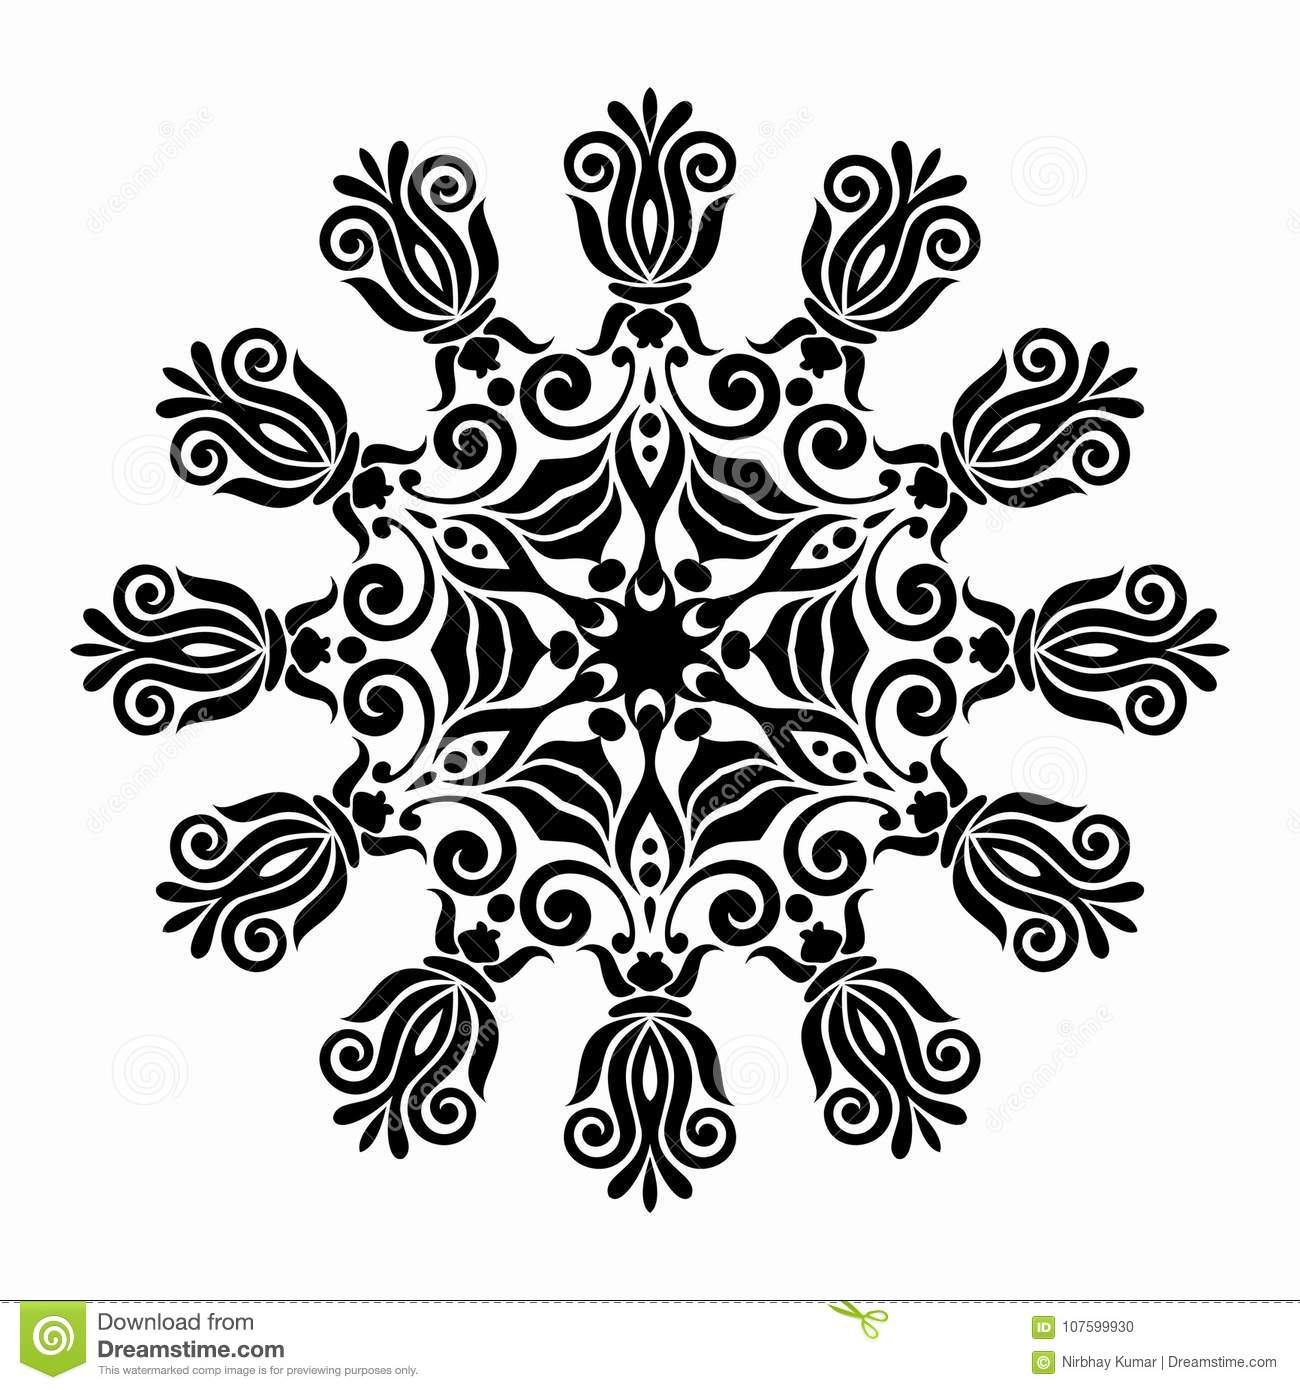 Beautiful Wallpaper Home Screen Black And White - pattern-website-background-wallpaper-screen-sever-book-cover-printing-laser-cutting-designs-vector-black-white-107599930  HD_151130.jpg